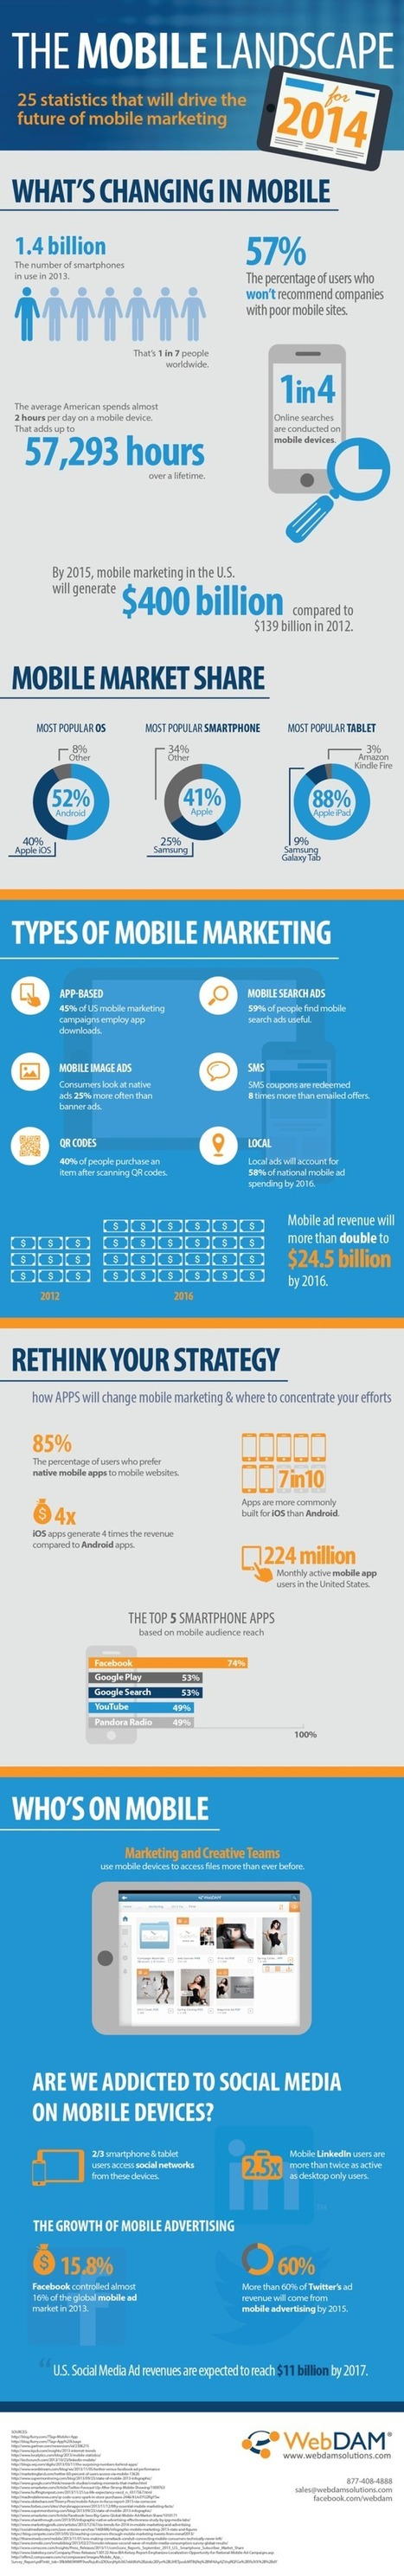 25 Mobile Marketing Stats for 2014 that Matter - Marketing Technology Blog | Integrated Brand Communications | Scoop.it